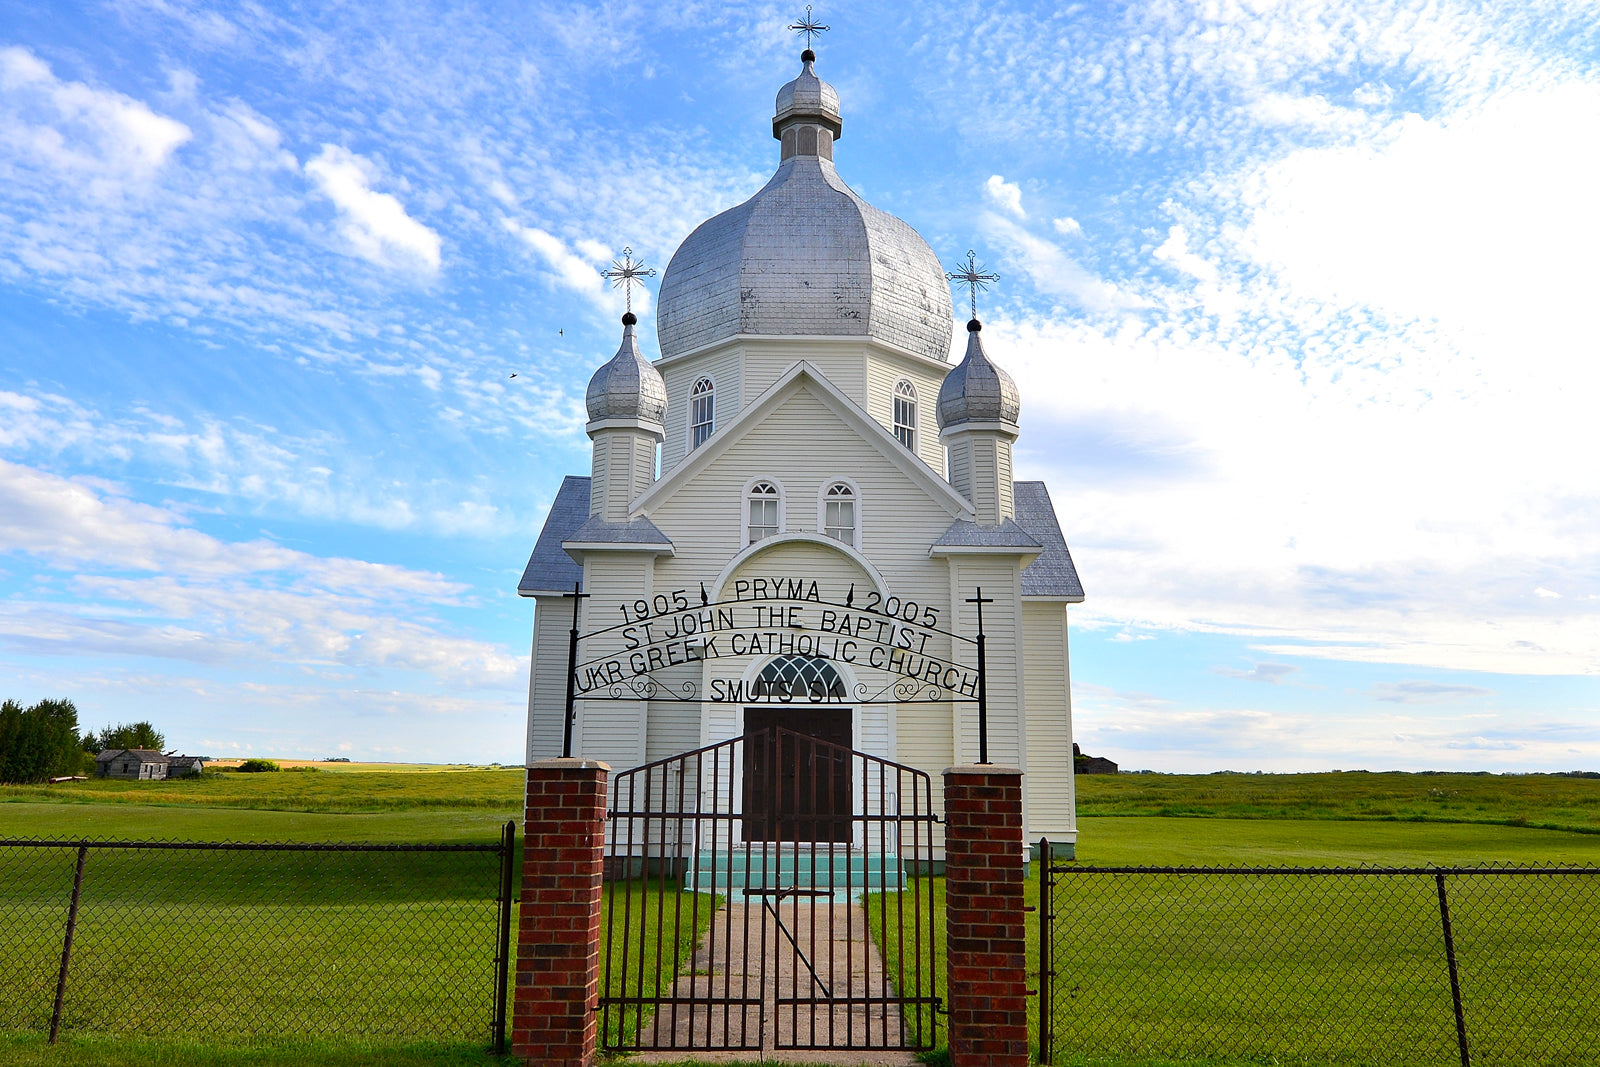 The Ukrainian Churches of the Canadian Prairies